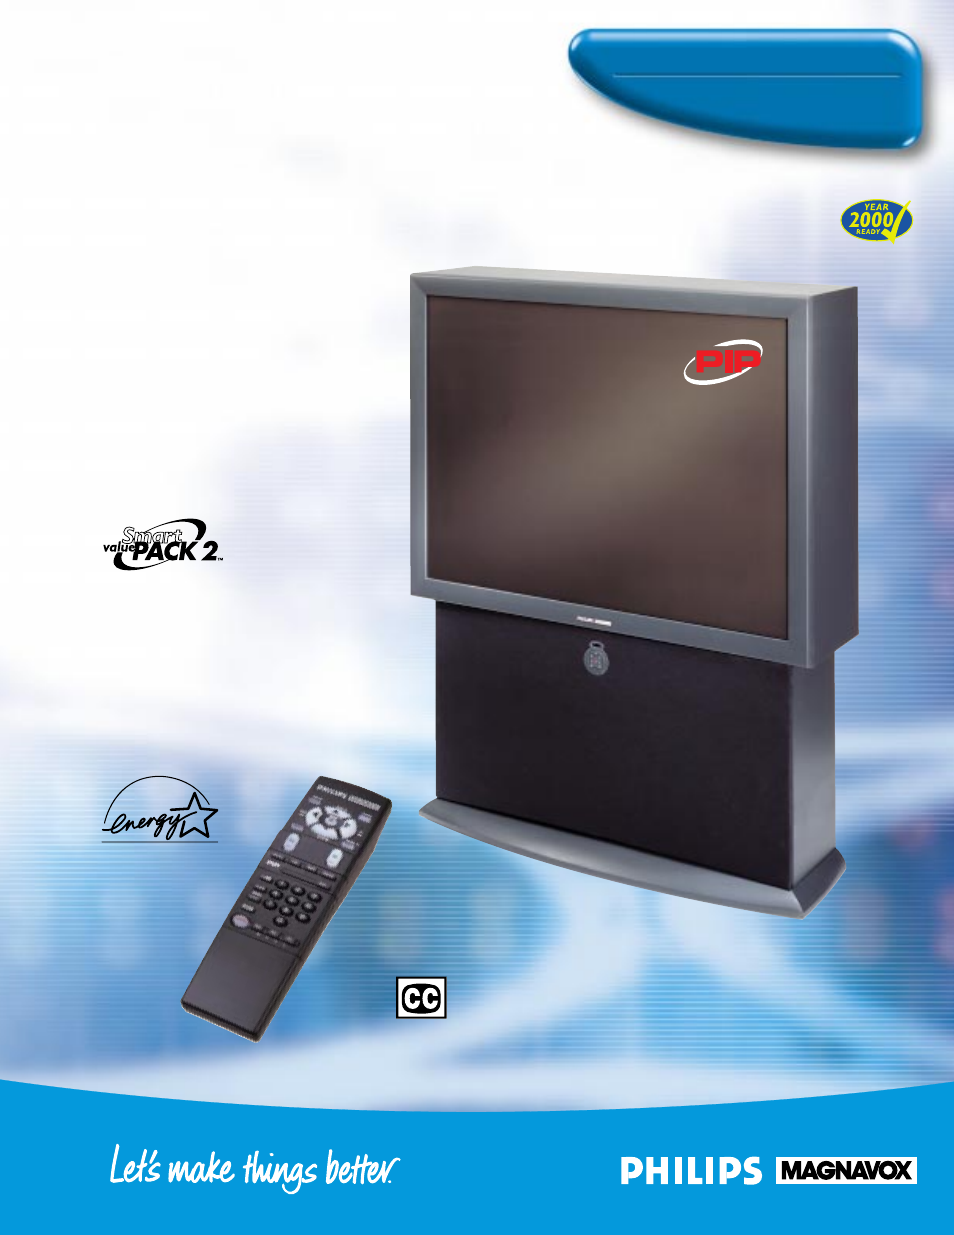 philips magnavox 9p5531c user manual 2 pages also for projection tv rh manualsdir com Magnavox PIP Magnavox 60 Inch TV